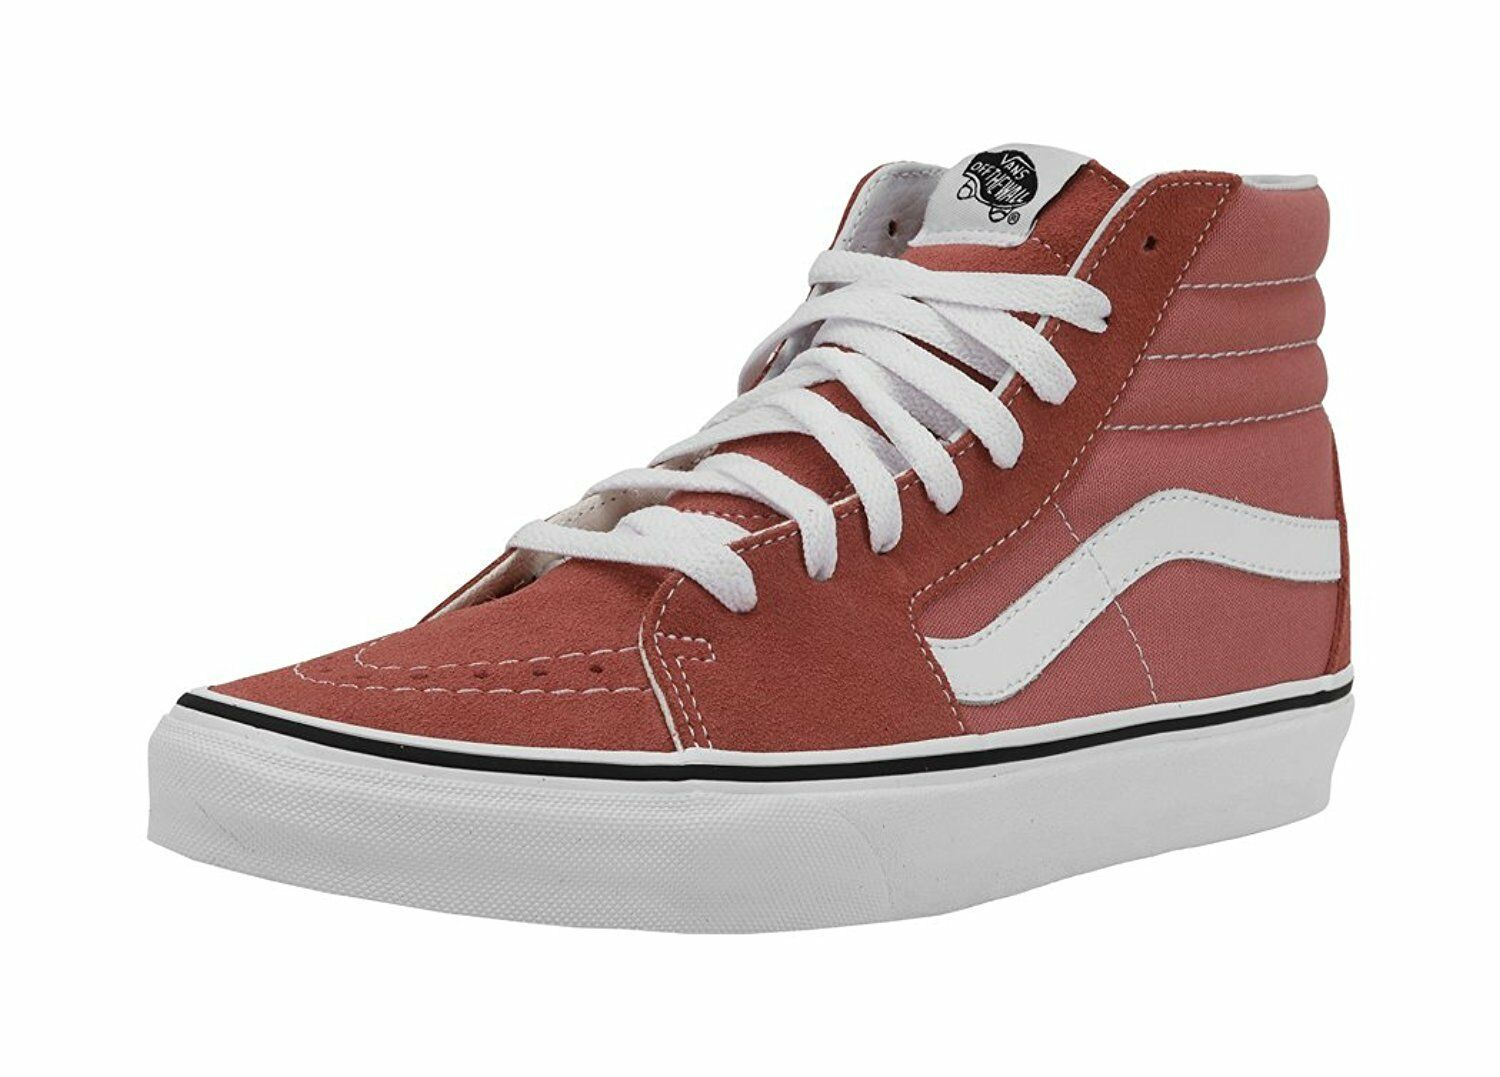 Vans Sk8-Hi Faded Rose/True White White Rose/True (VN0A38GEQSR) bfb766